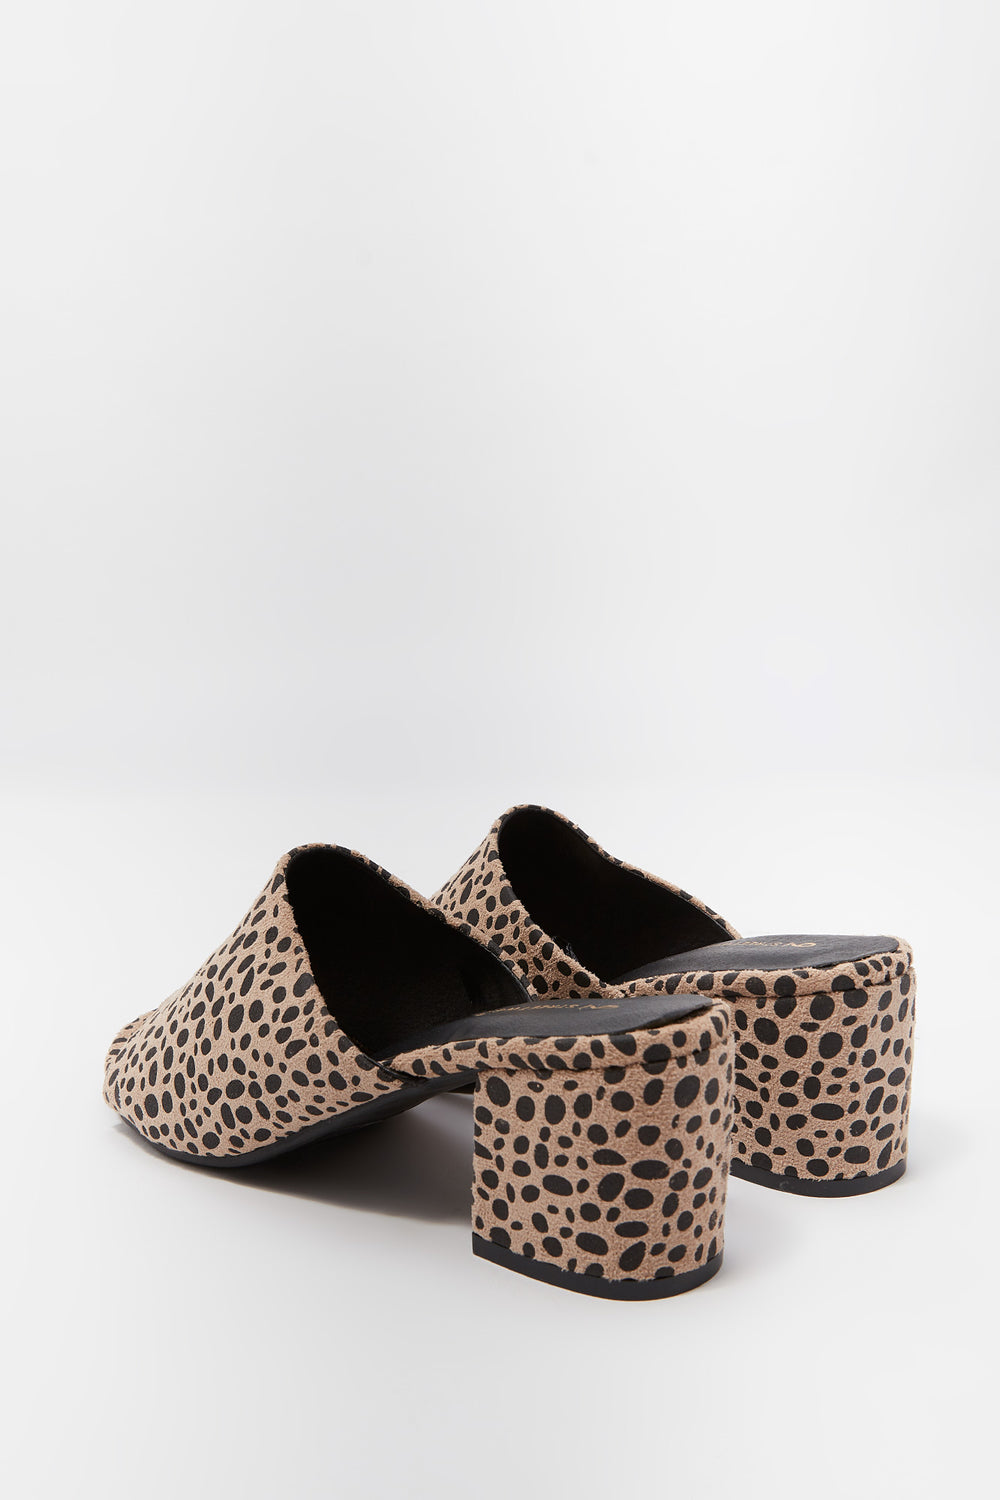 Printed Open Toe Low Block Heel Mule Leopard